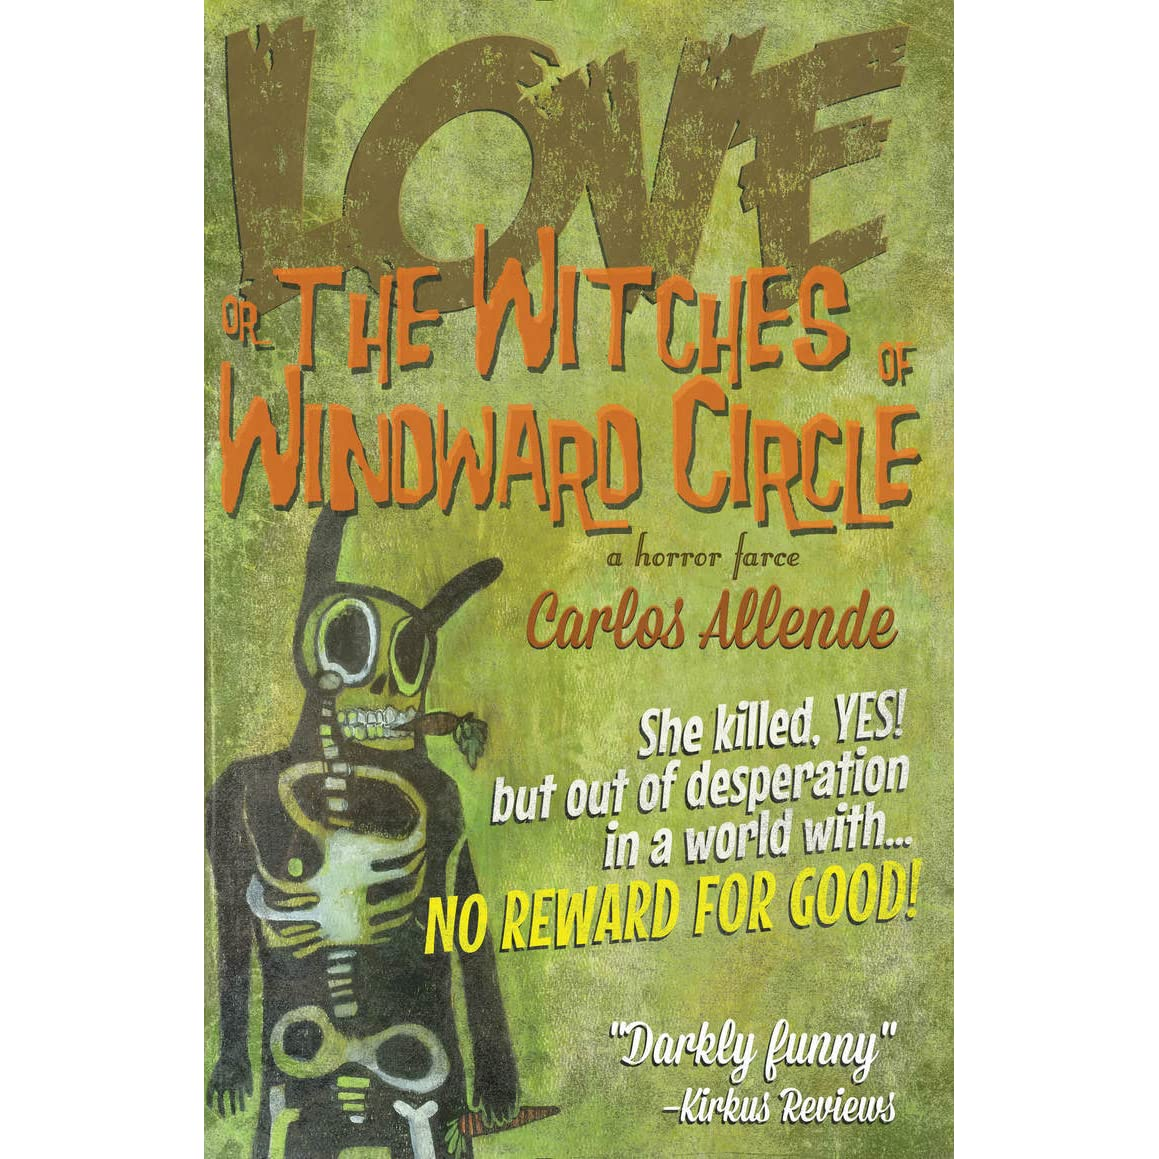 Love, or the Witches of Windward Circle: A Horror Farce by